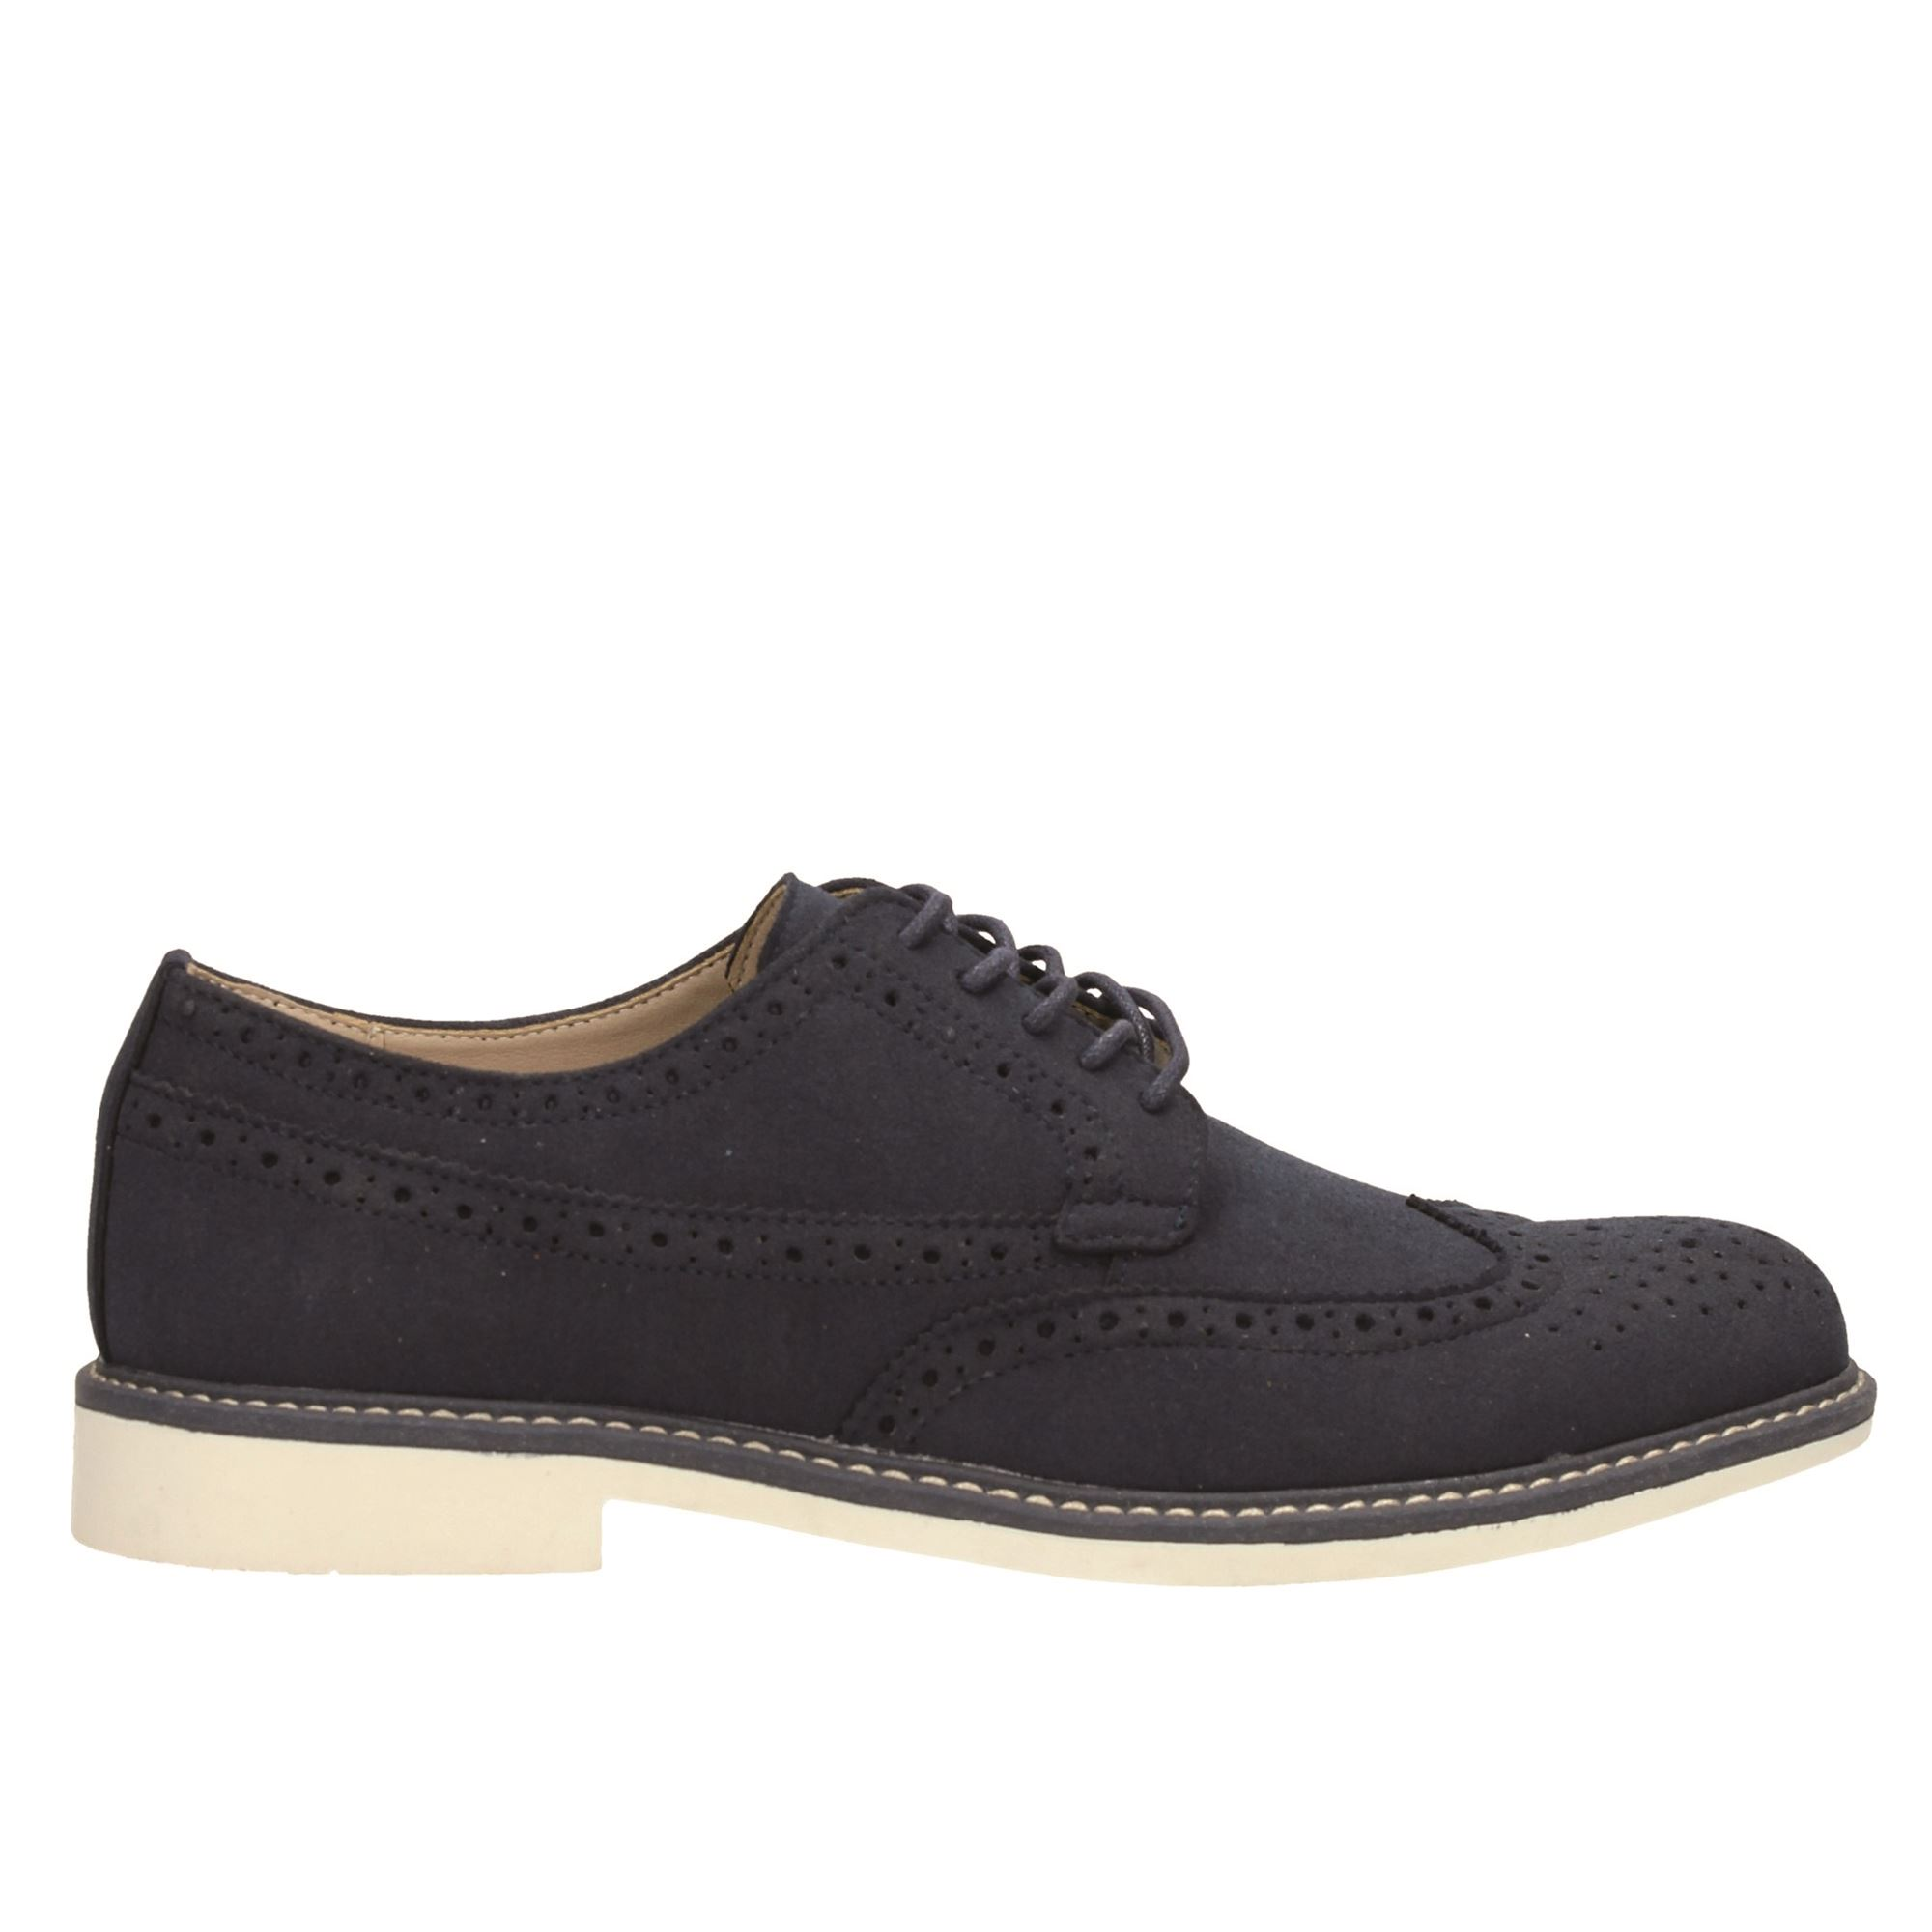 Tata Italia Shoes Man Derby Navy STP19-TT071